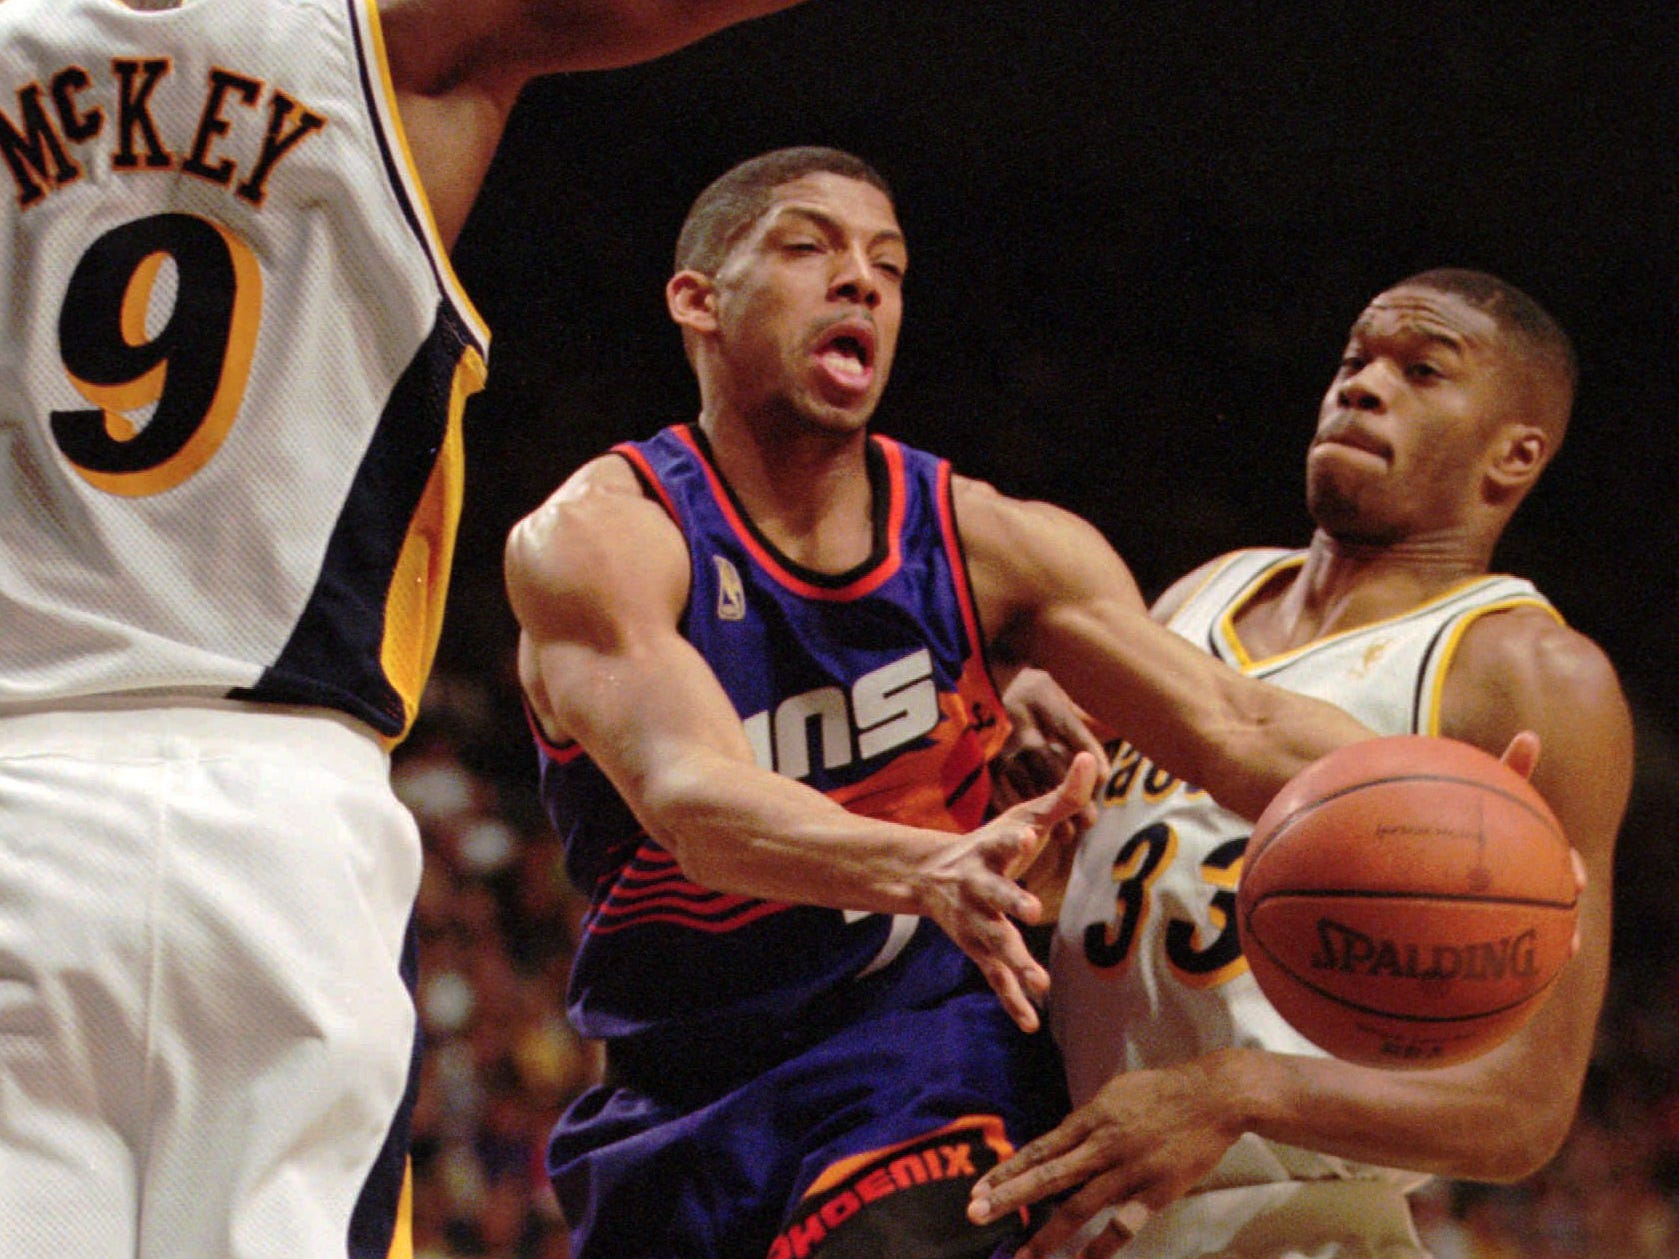 1996-97 | Suns MVP: Kevin Johnson. KJ was nearing the end of a stretch that would see him at the top of several Suns career offensive categories. It's too bad he'll be remembered as much for accusations of sexual misconduct, which he has denied.